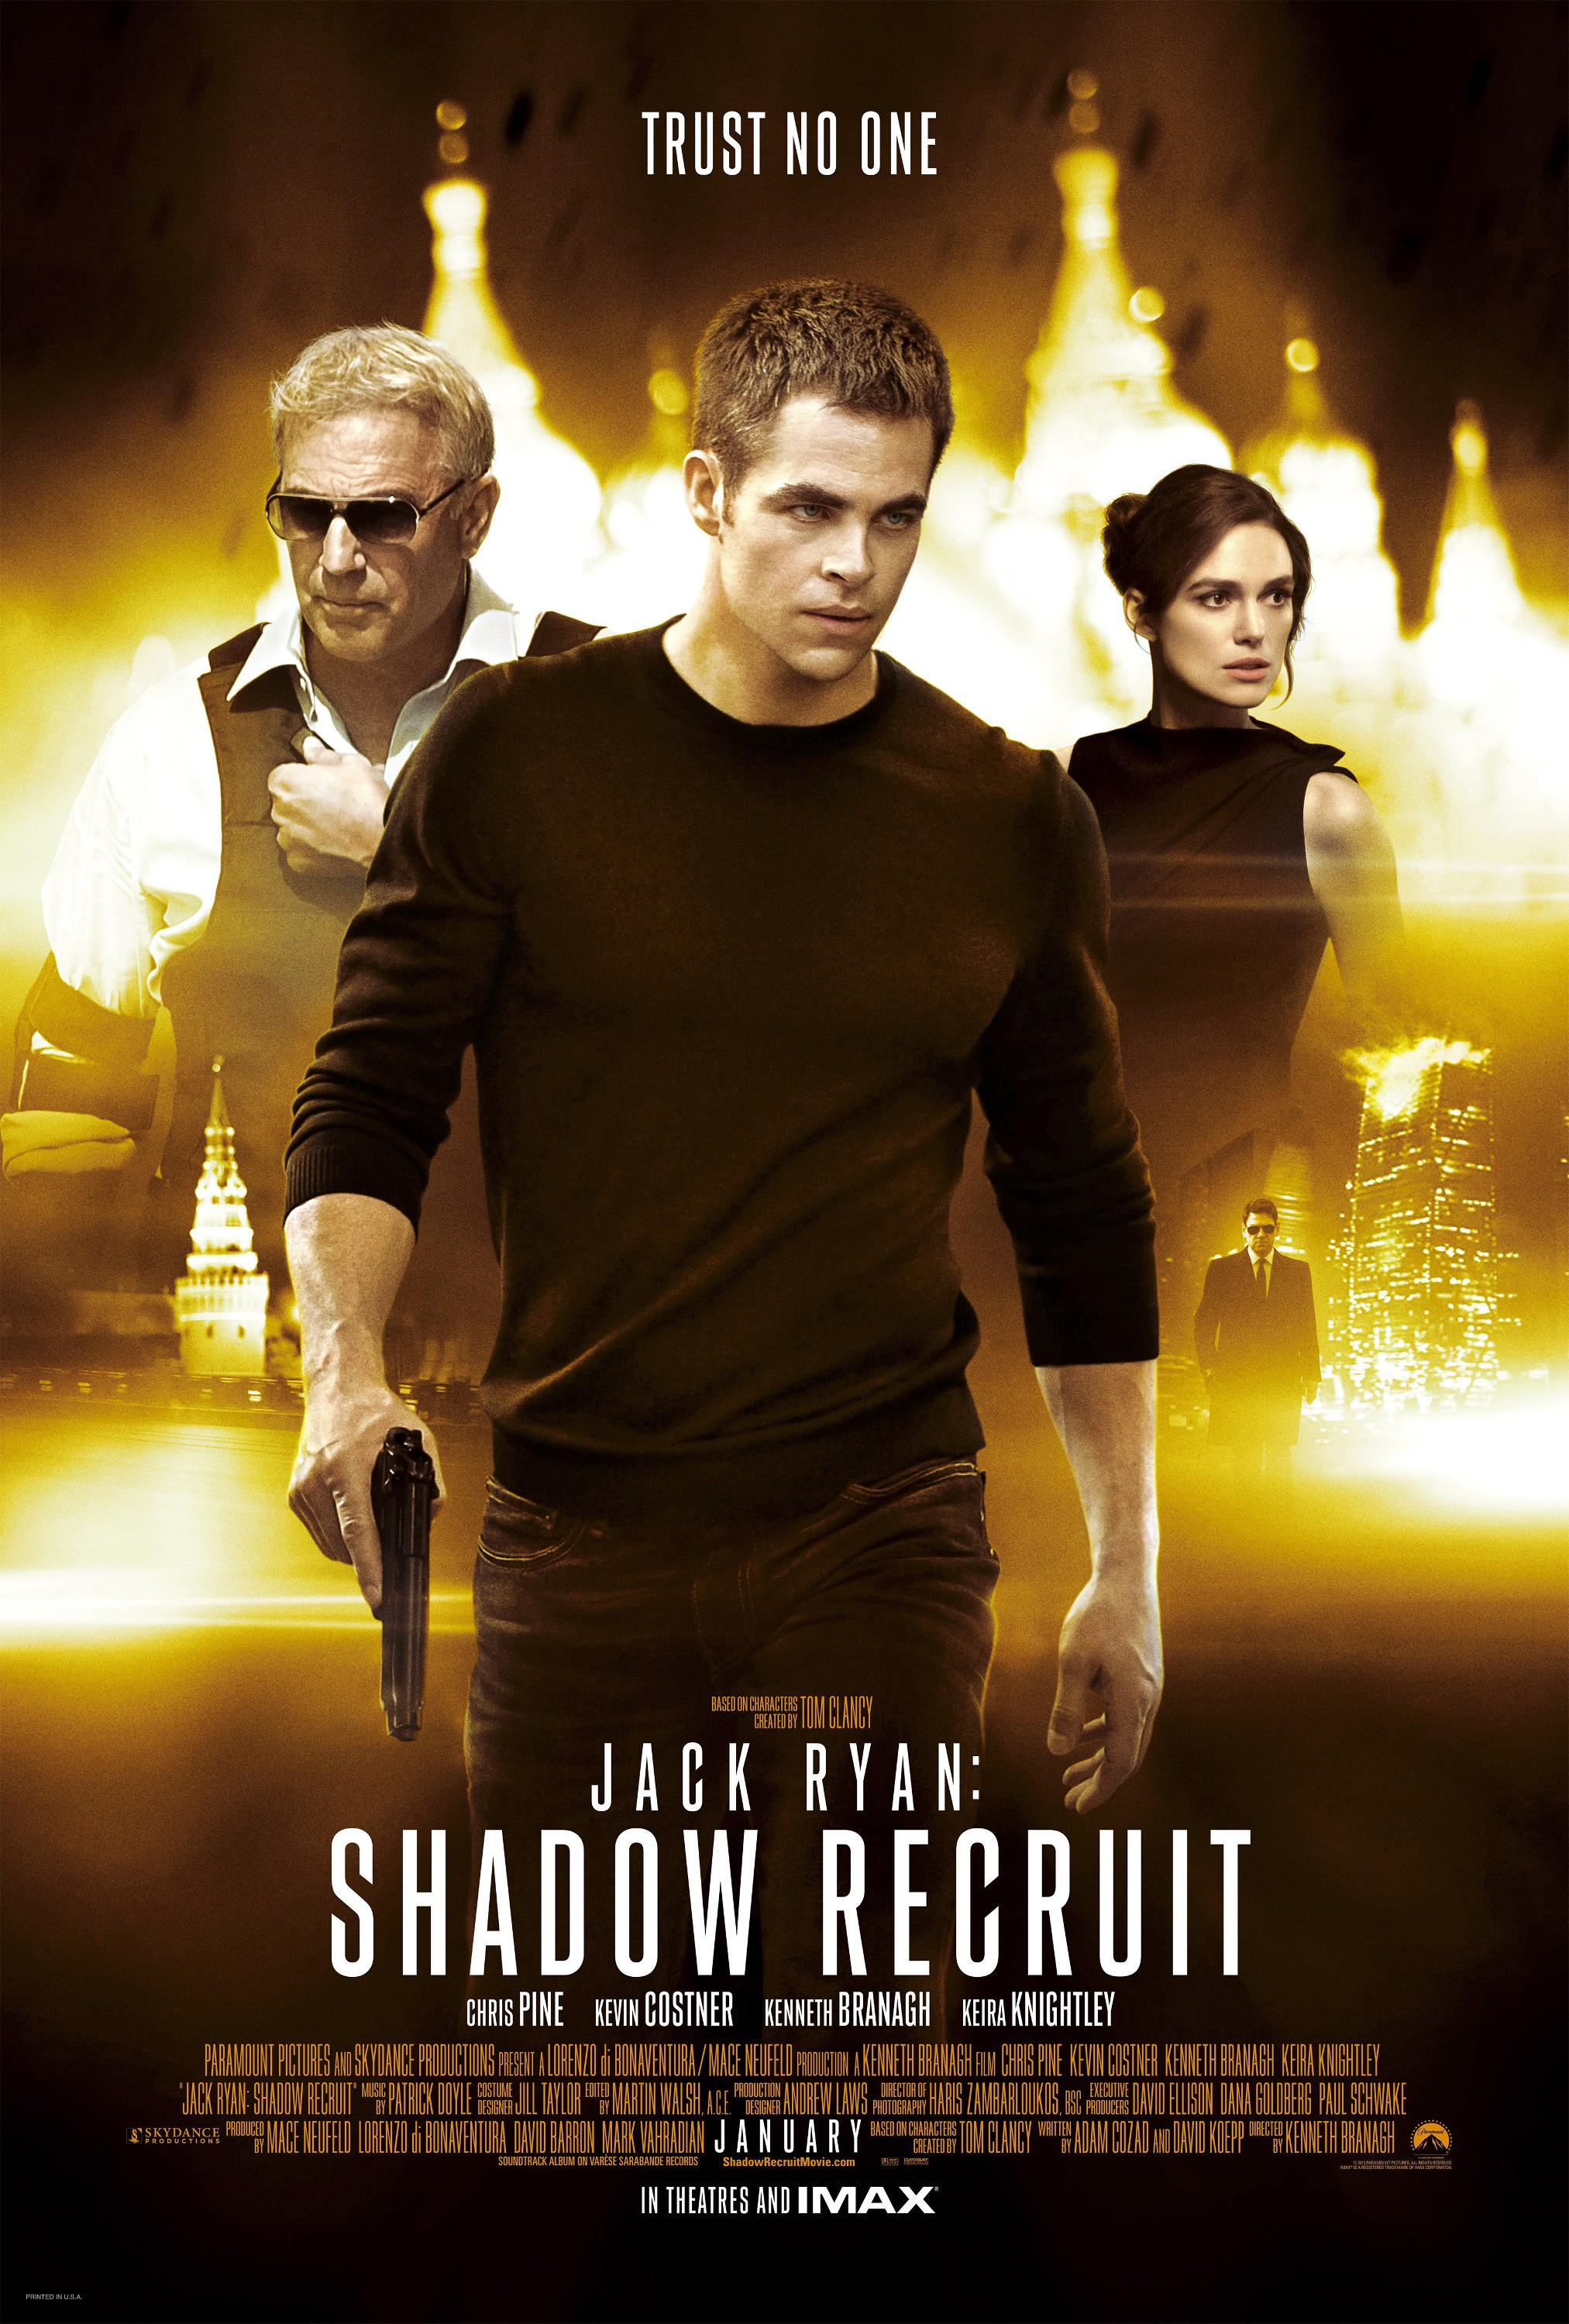 Jack Ryan Shadow Recruit-Official Poster Banner PROMO POSTER-02JANEIRO2014-02